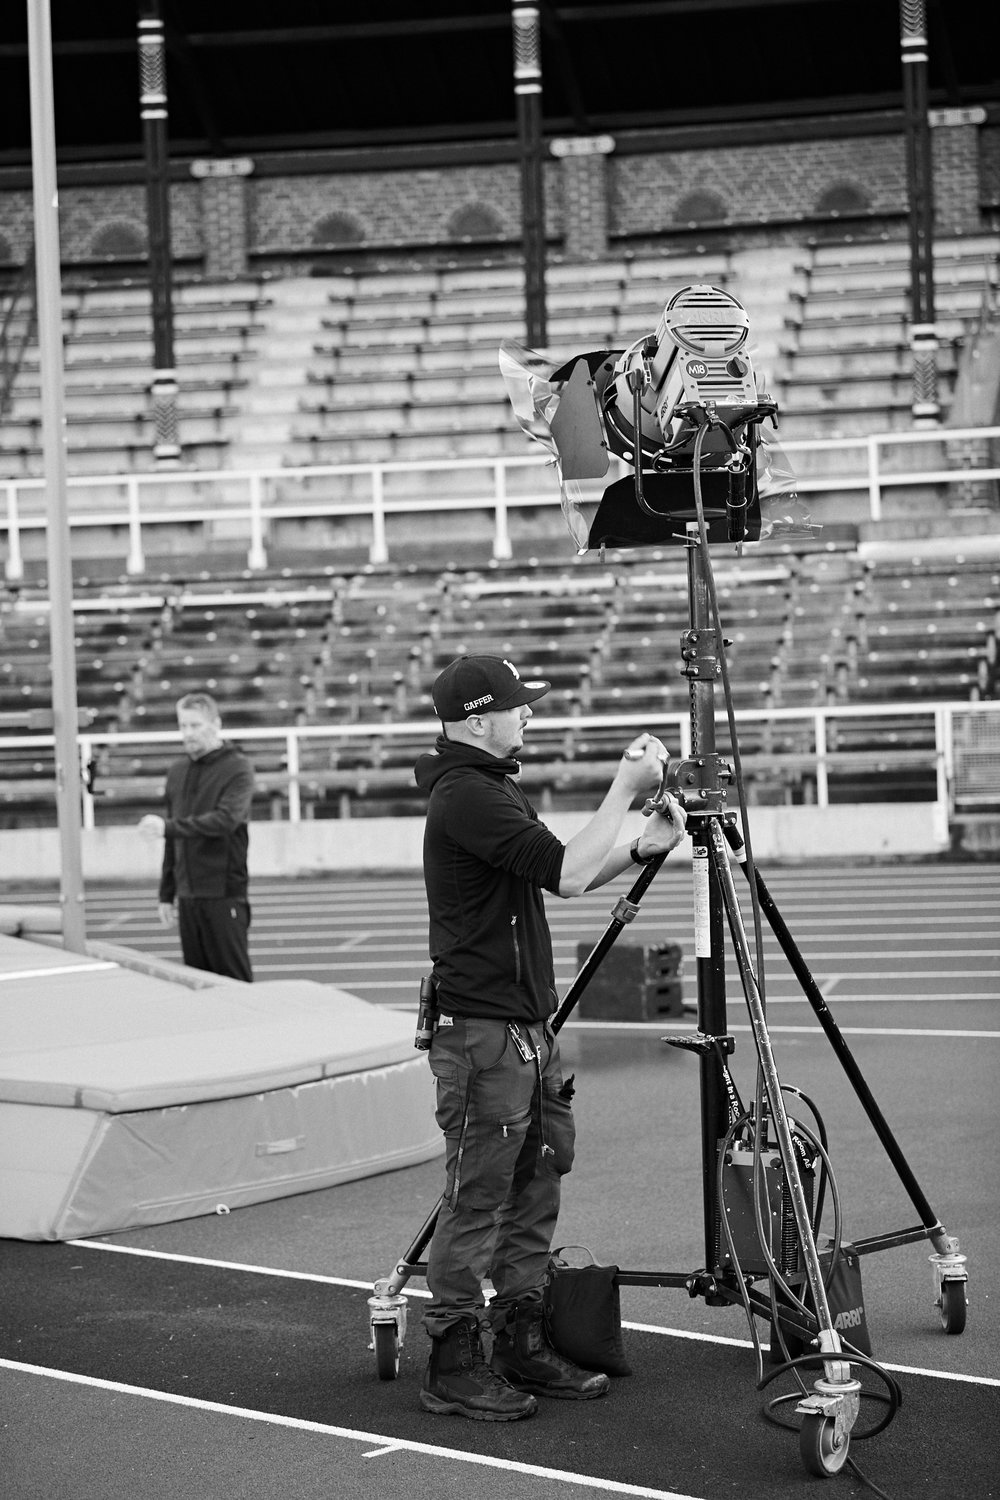 BTS_Porudction_20170921__DSC1089_Kristofer Samuelsson Photography.jpg